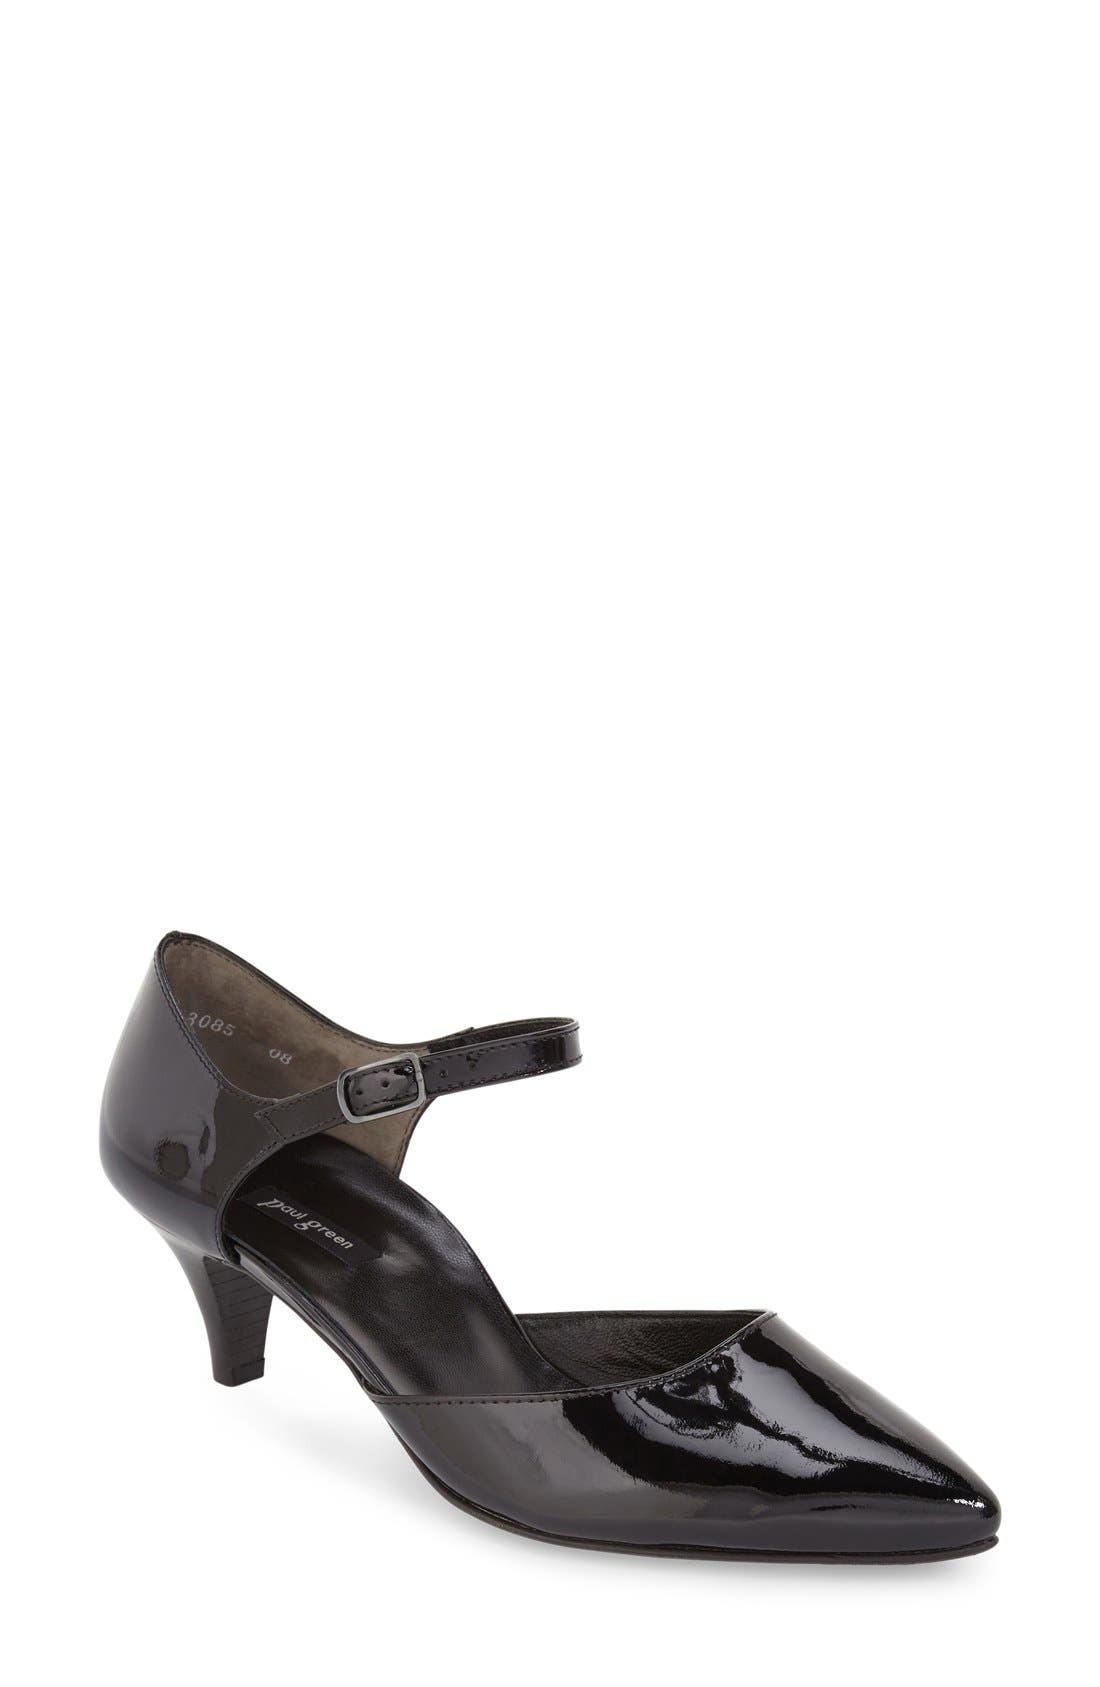 PAUL GREEN 'Hailey' Pointy Toe Ankle Strap Pump